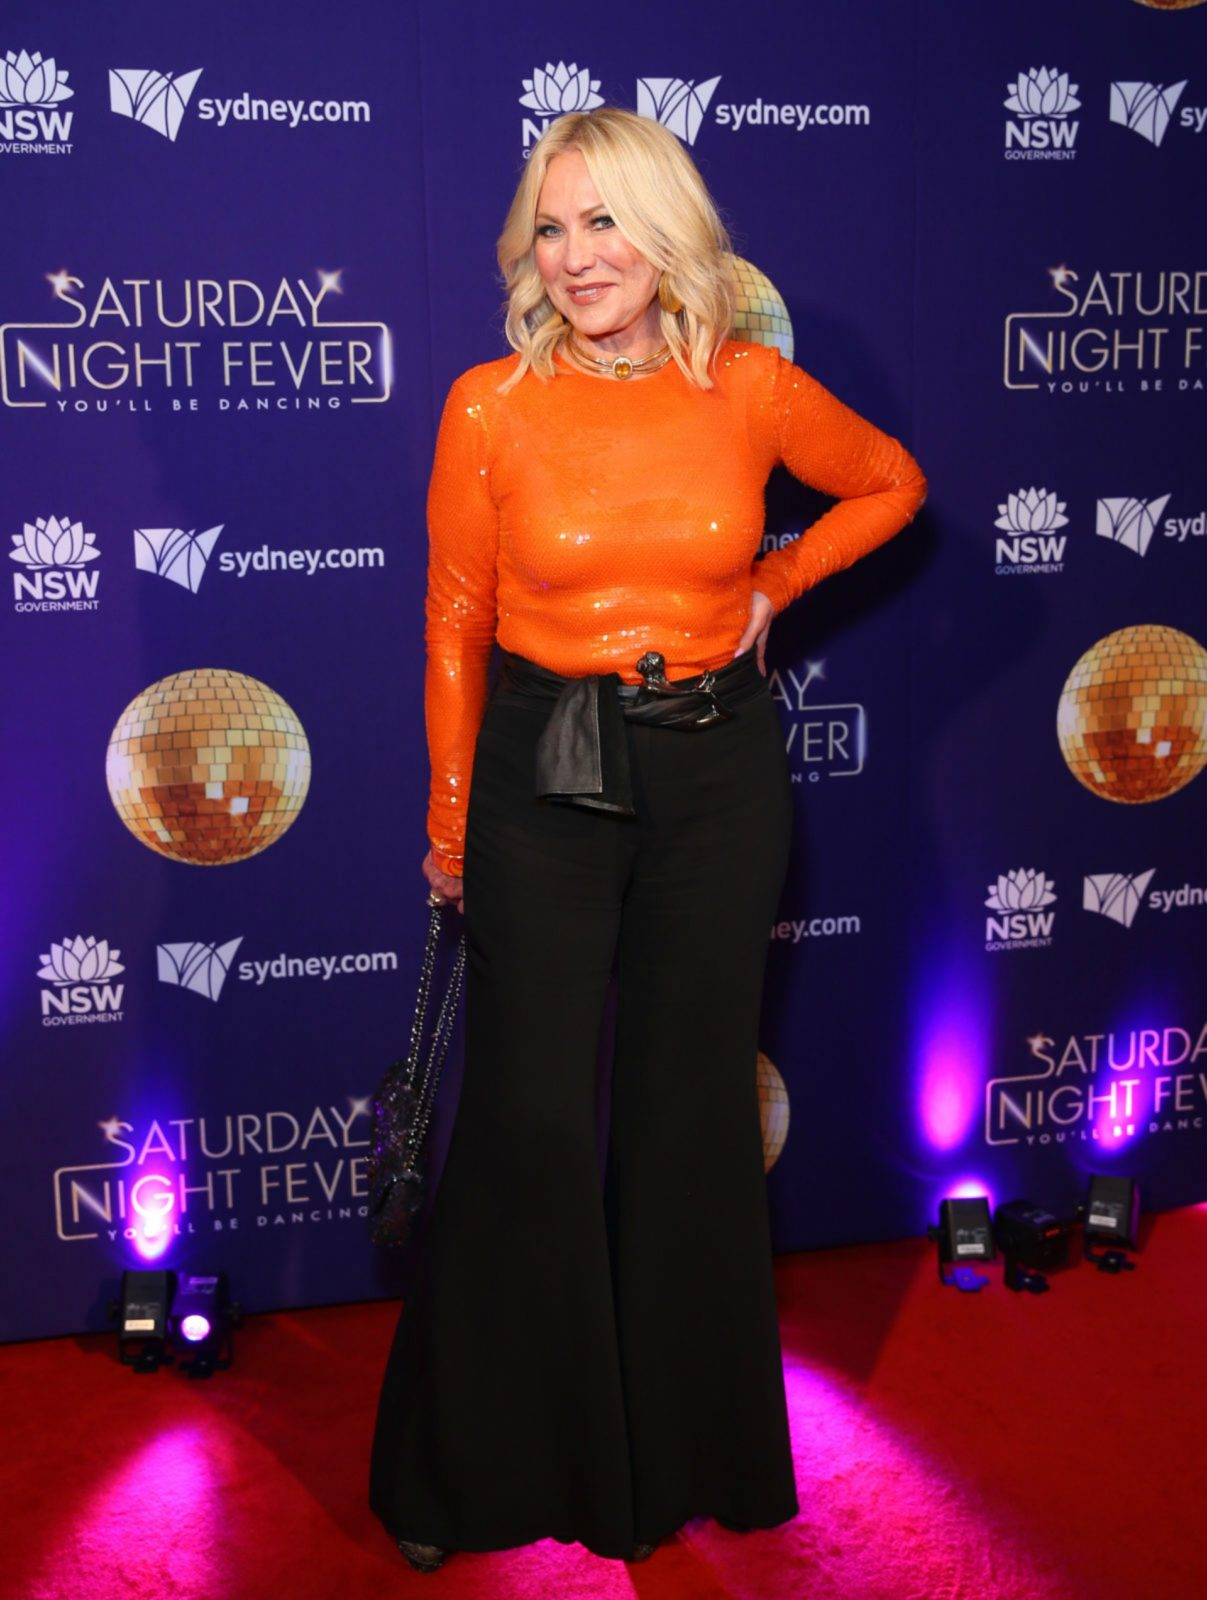 Kerri-Anne Kennerley made her first public appearance since her husband's death earlier in April. Kerri-Anne Kennerley made her first public appearance since her husband's death earlier in April.